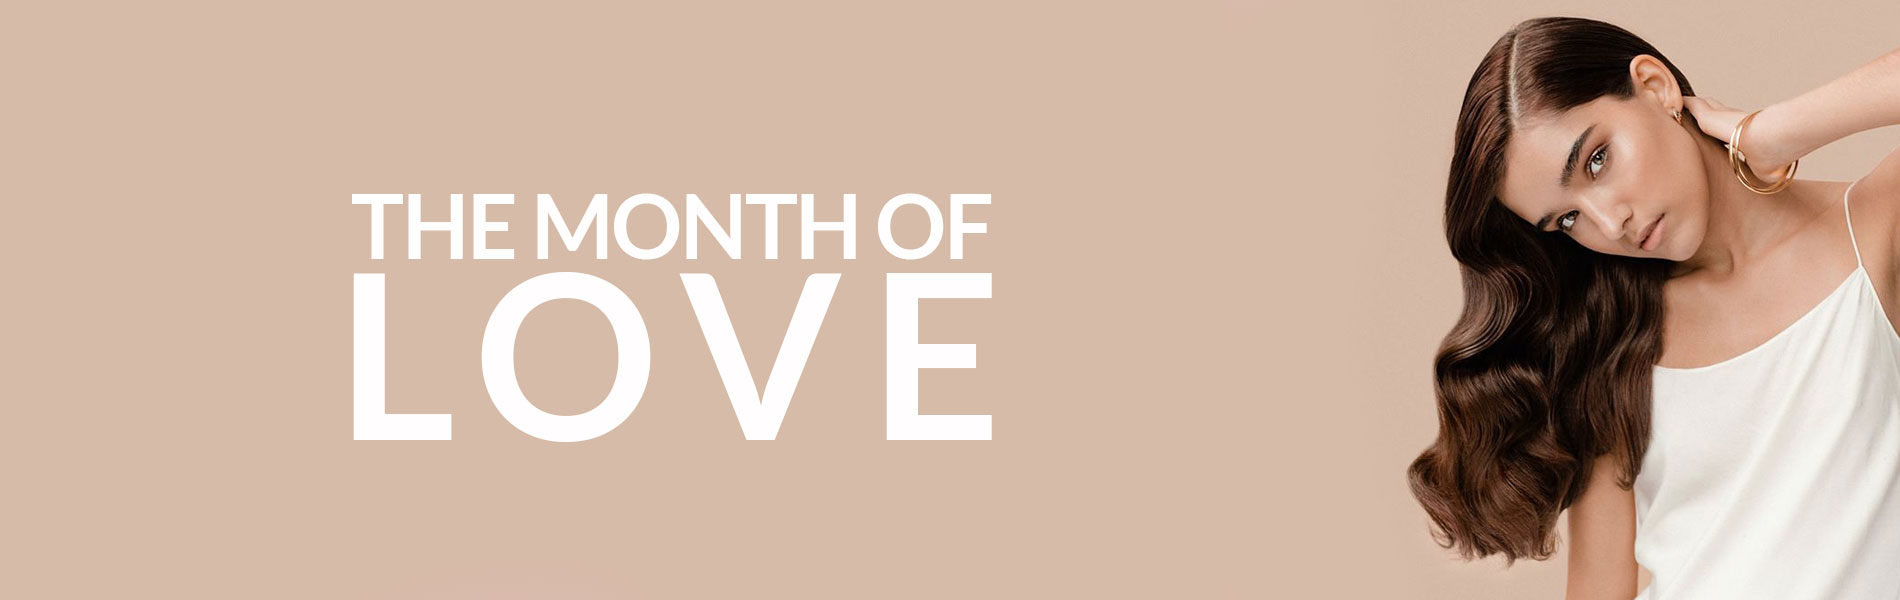 the month of love banner 2